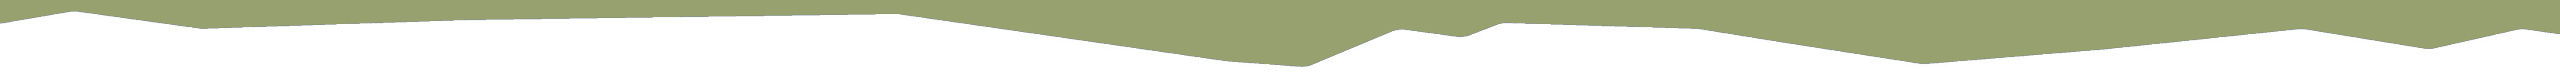 Website decoration that looks like torn paper. The color is green.